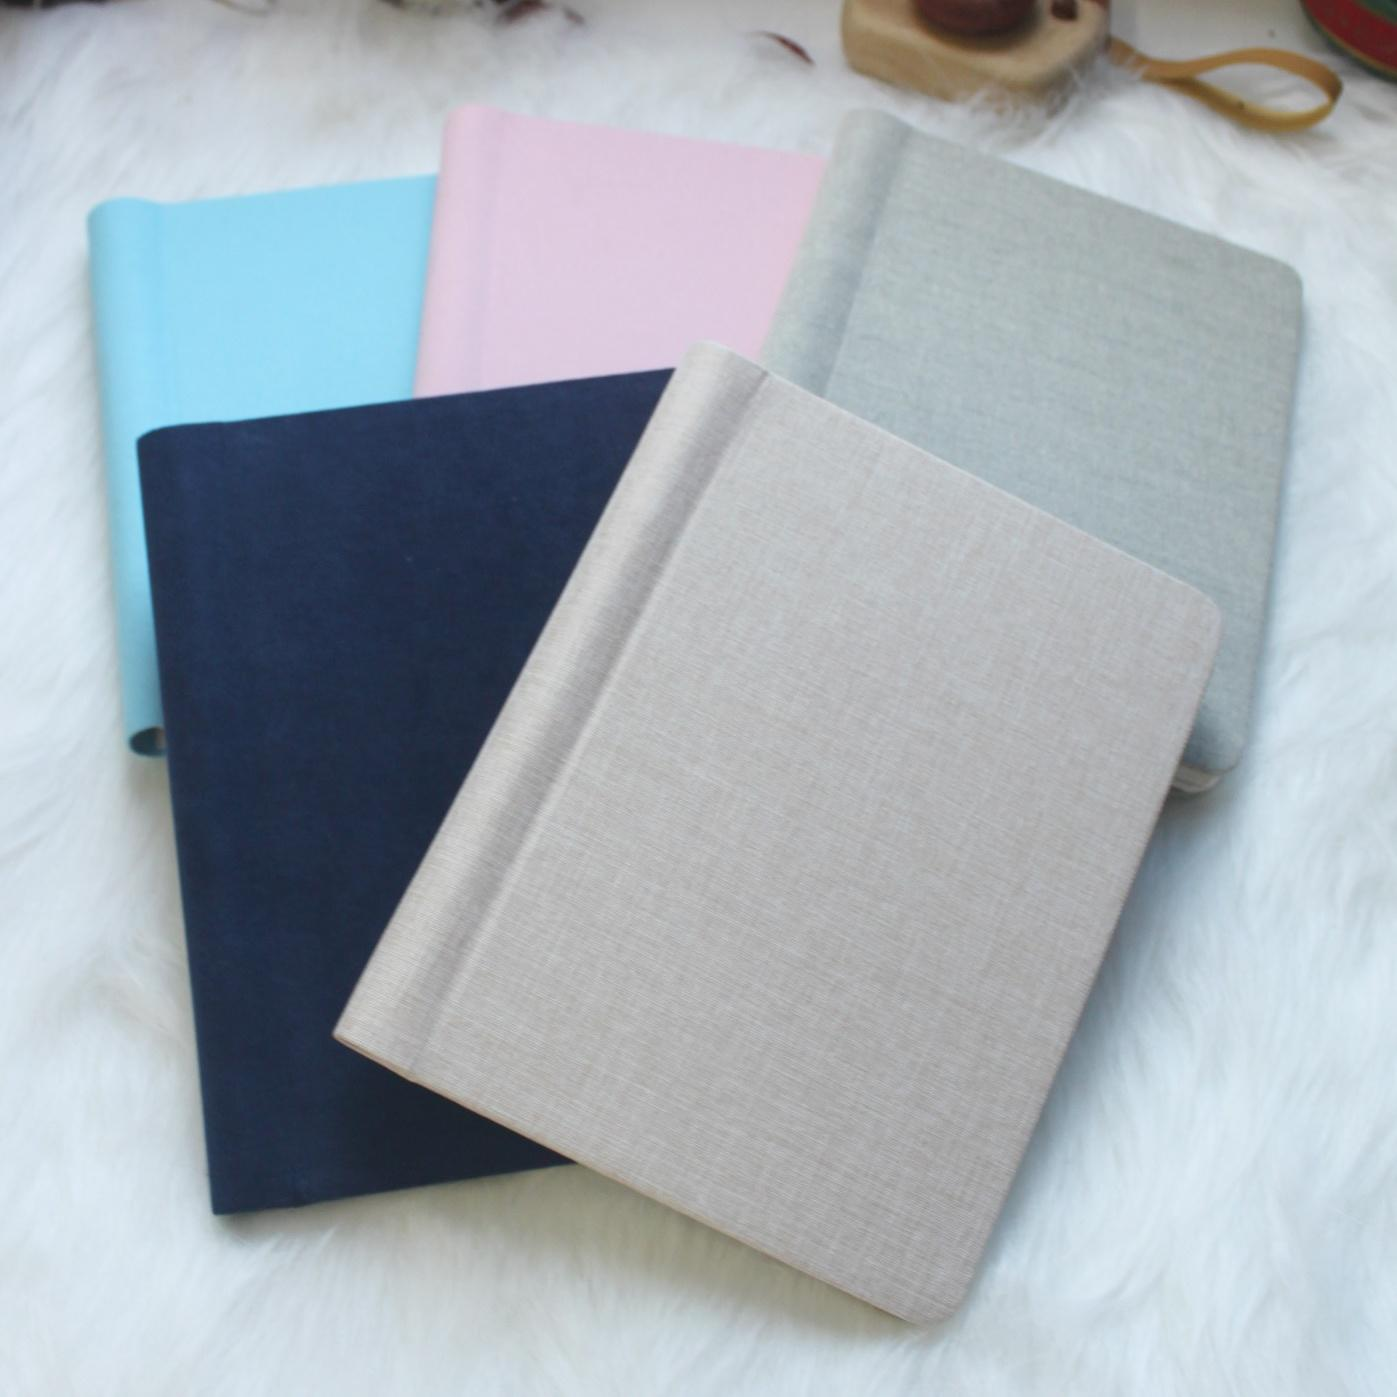 product-Newest stylish planner diary cute planners organizers hardcover daily planner printing custo-1